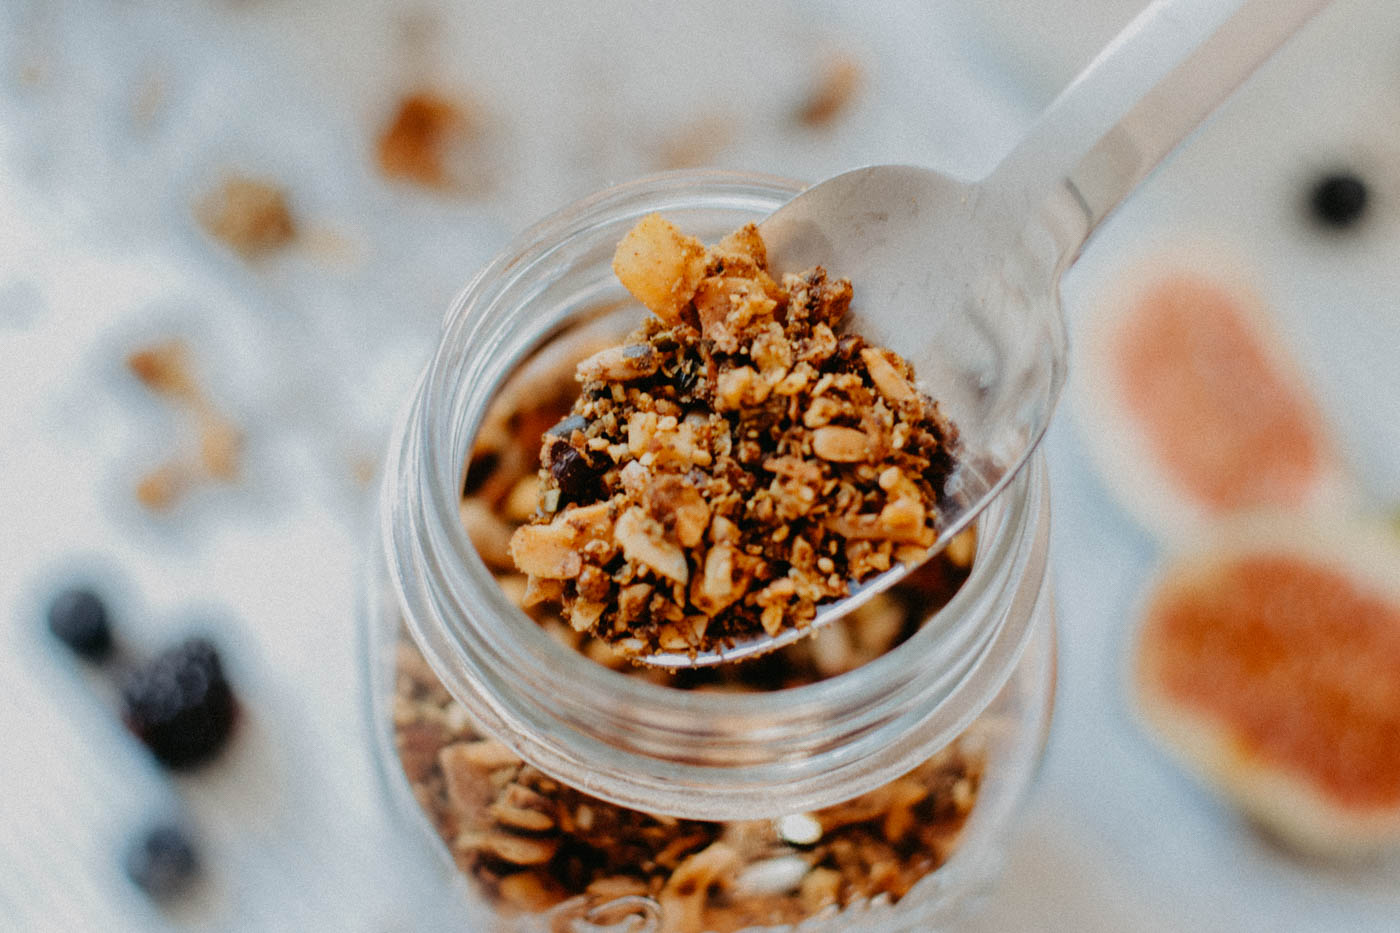 Gluten-free Granola with Maple Syrup